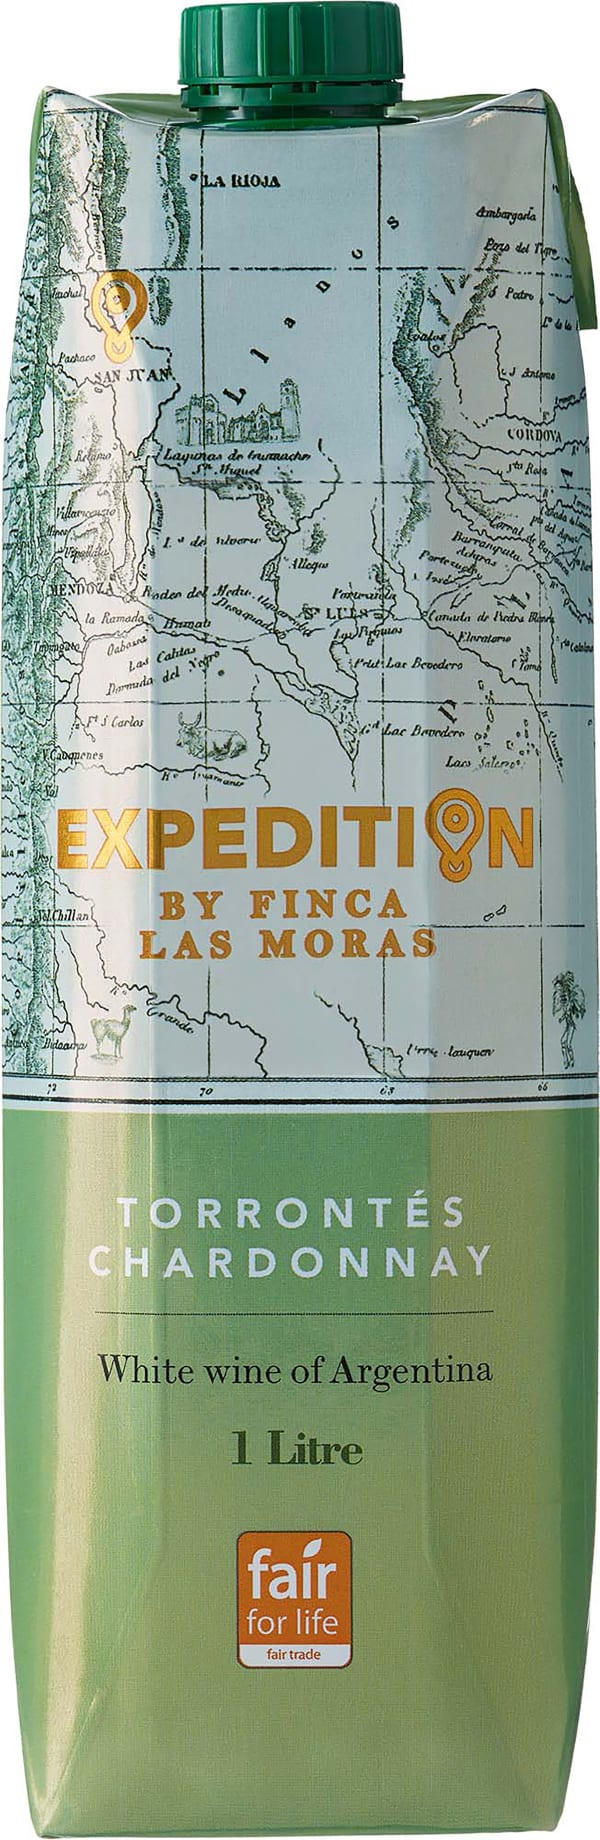 Expedition by Finca Las Moras Torrontés Chardonnay 2019 carton package